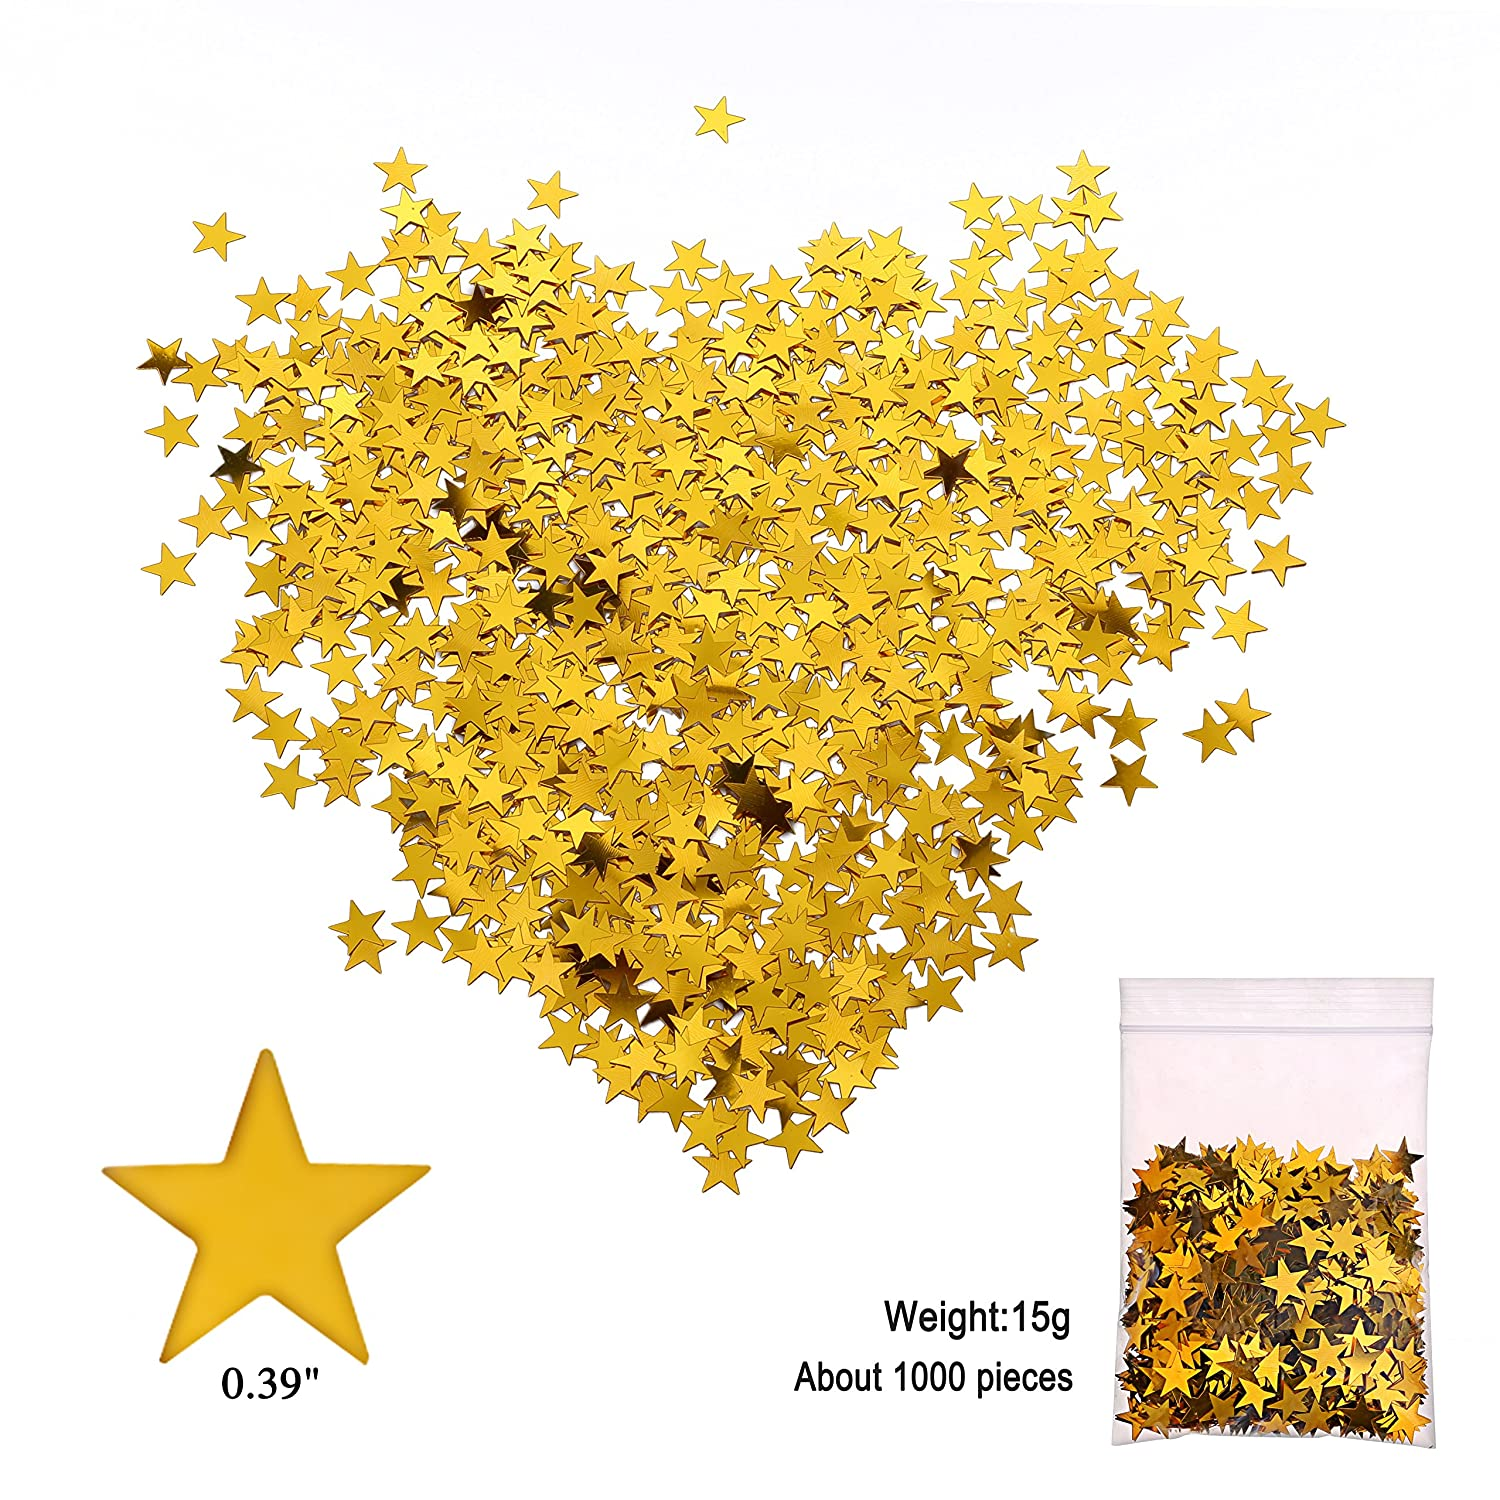 15 Gram Gold Hanging Party Supplies for Wedding Shower Birthday Party Table Decor Twinkle Twinkle Little Star Baby Shower 30 Counts Konsait Hanging Swirl Gold Decorations Gold Star Table Confetti